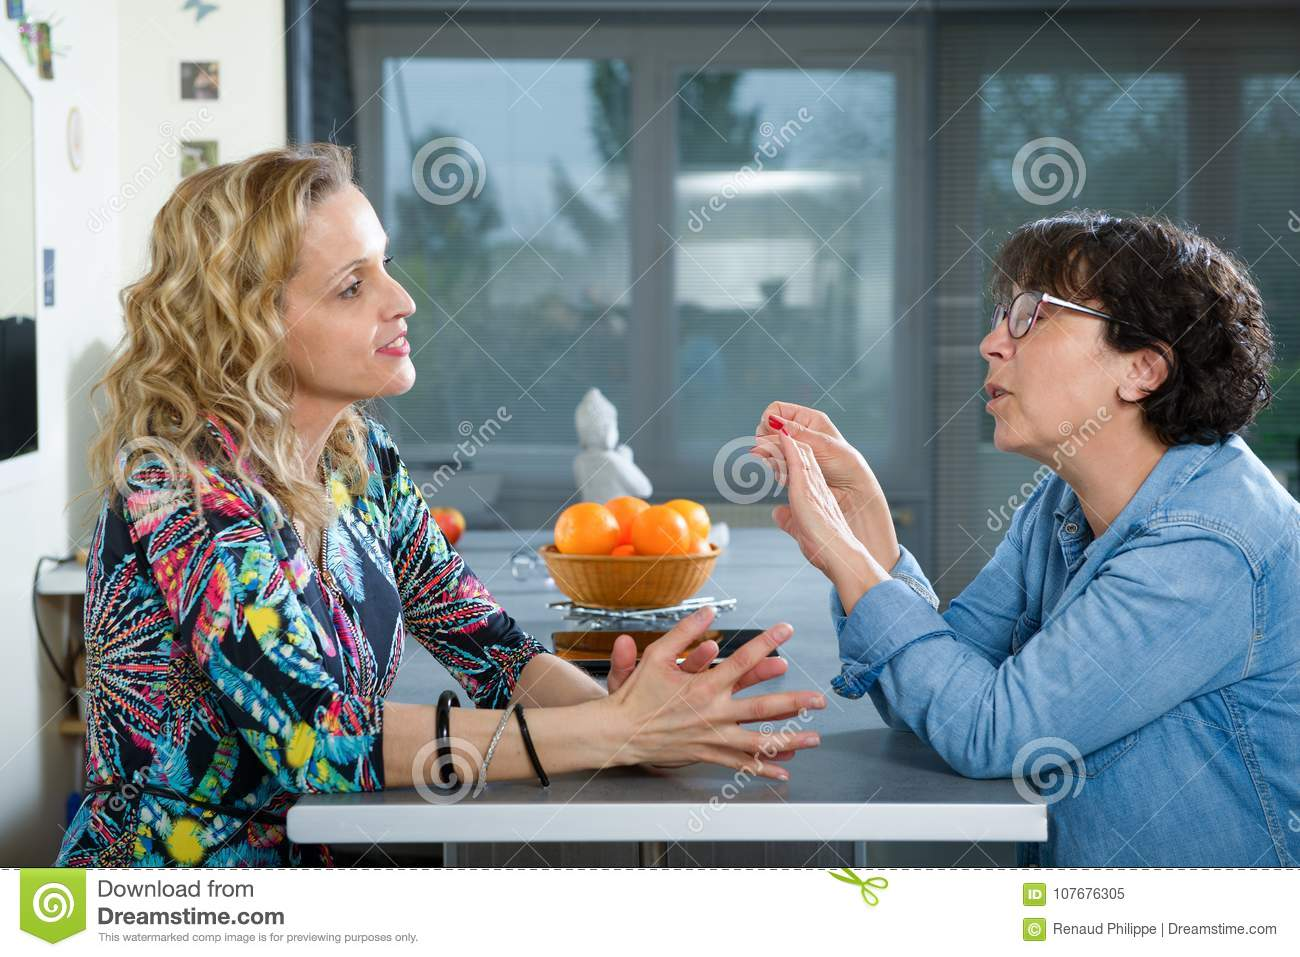 Woman In Kitchen Talking With Friend Stock Image - Image of ...